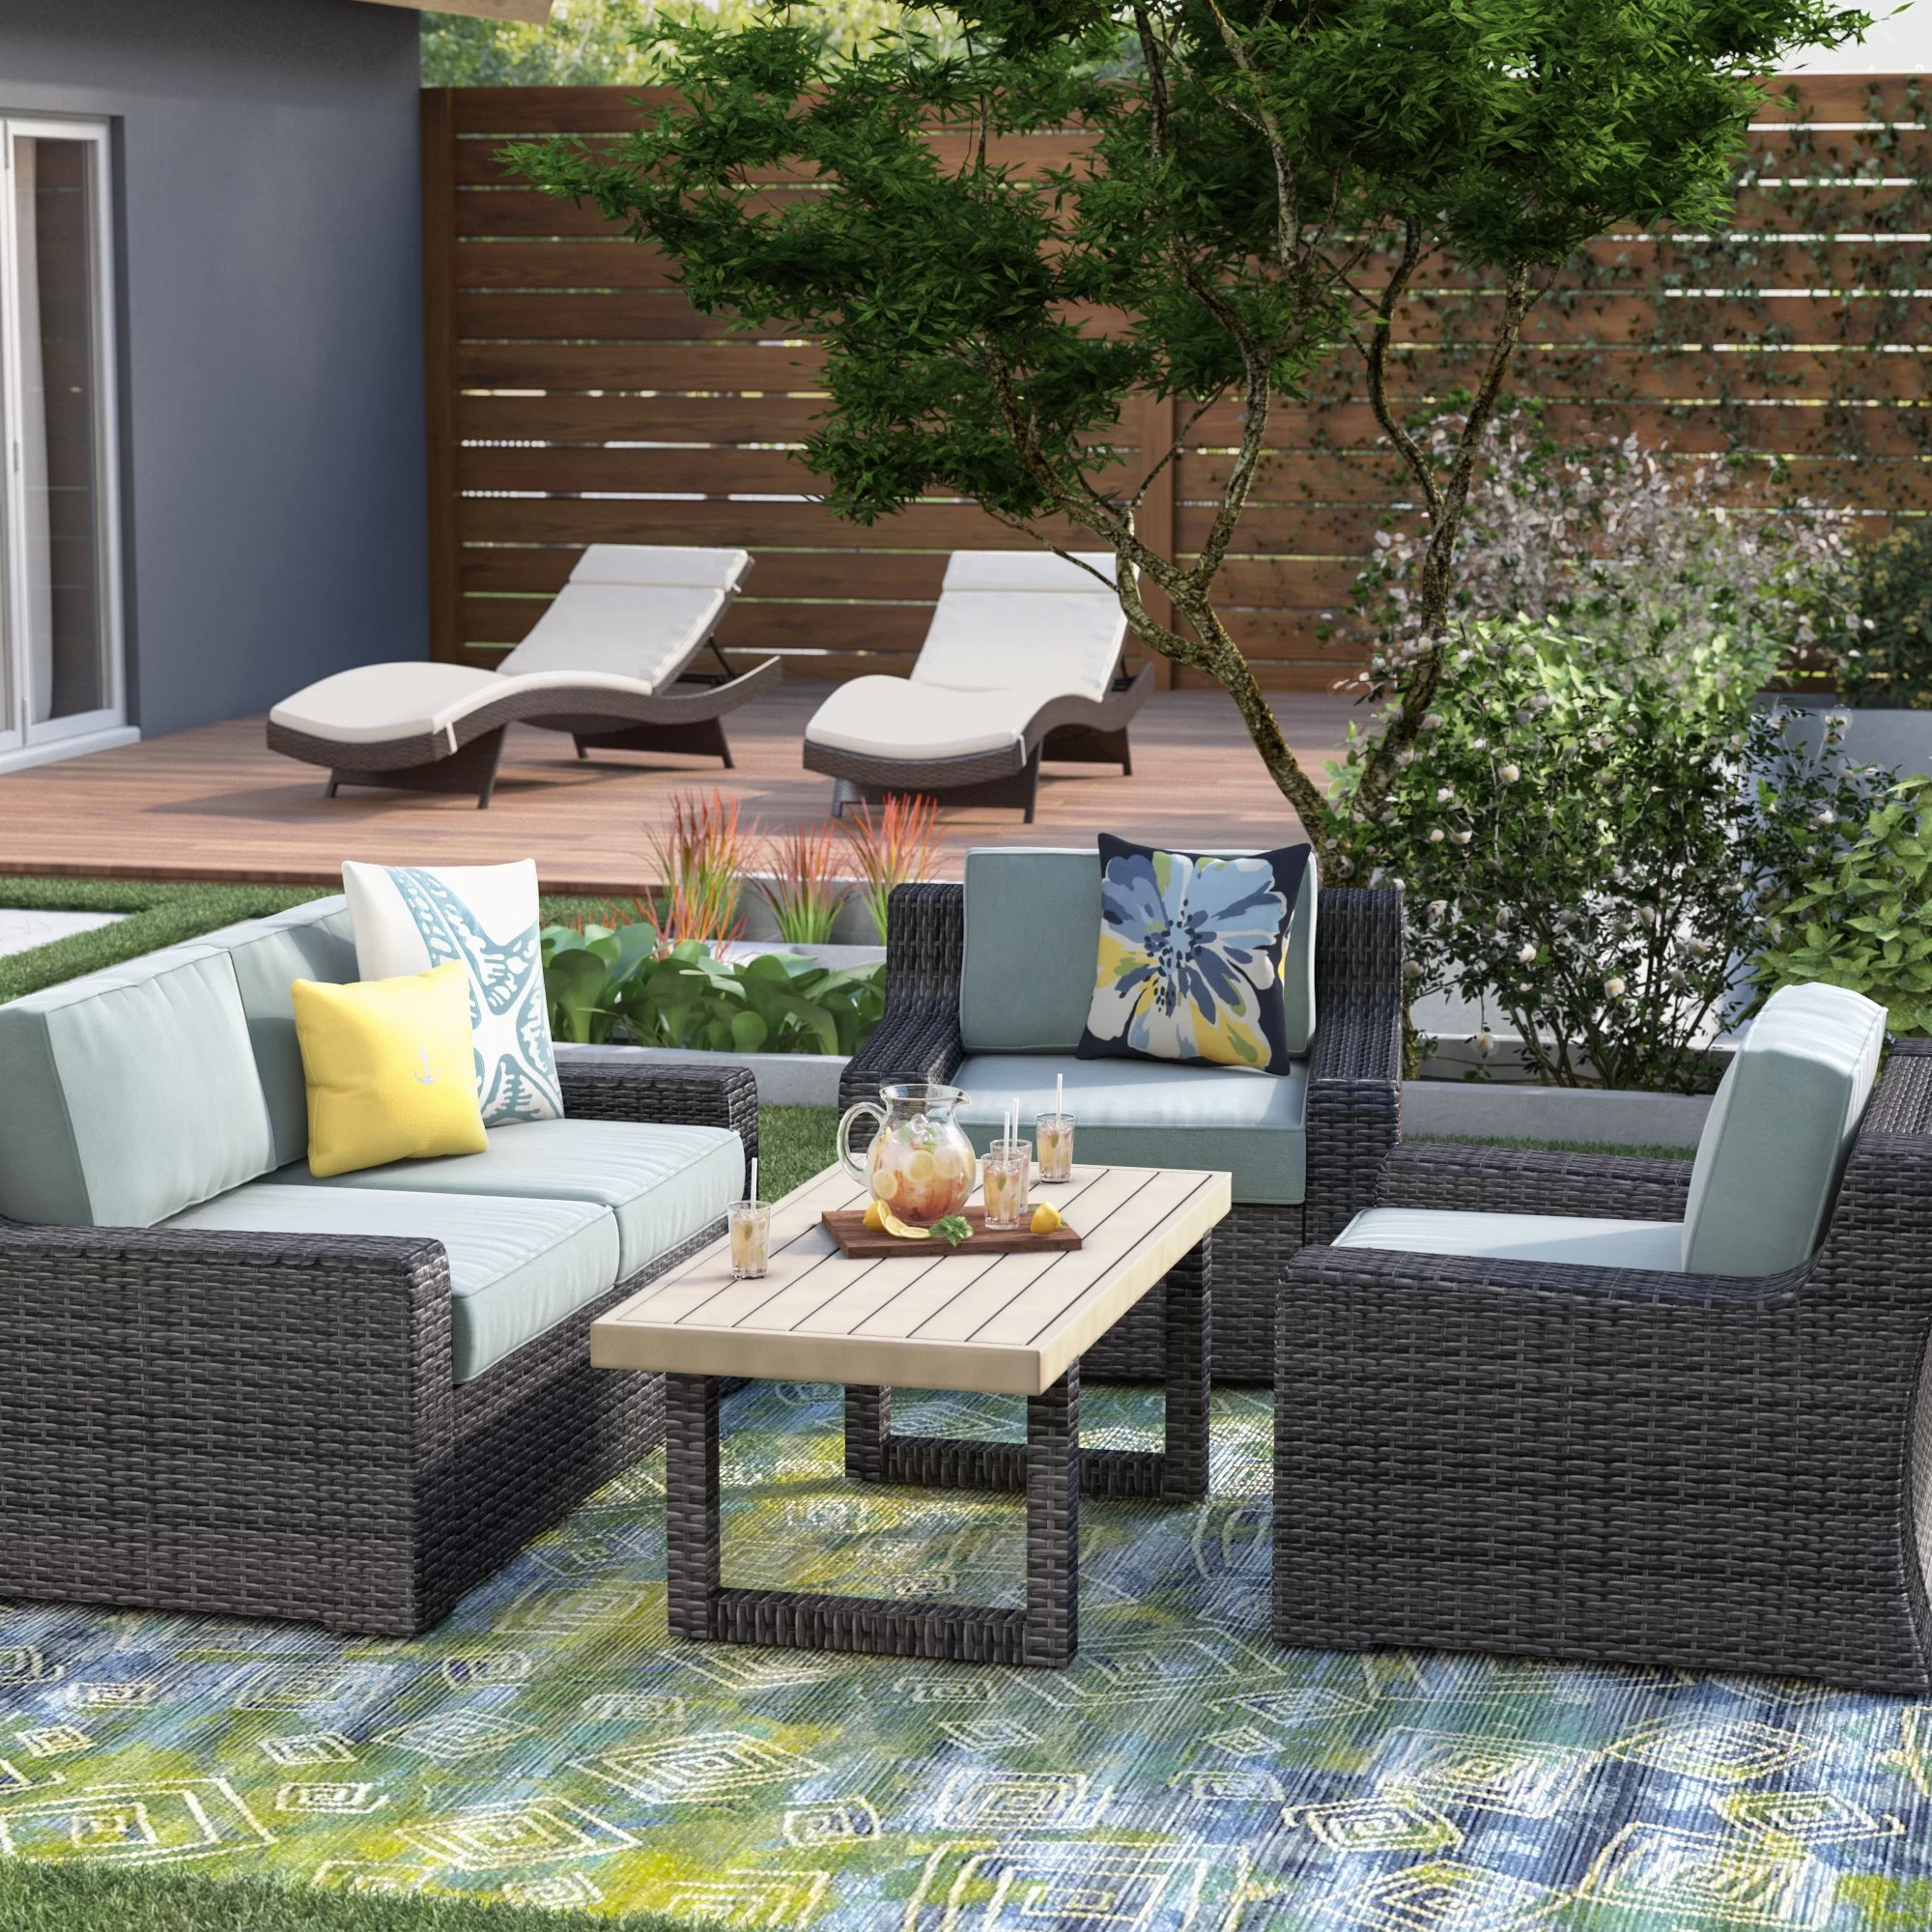 Baptist 6 Piece Rattan Sofa Set With Cushions Linwood 4 Piece Sofa Set With Cushions